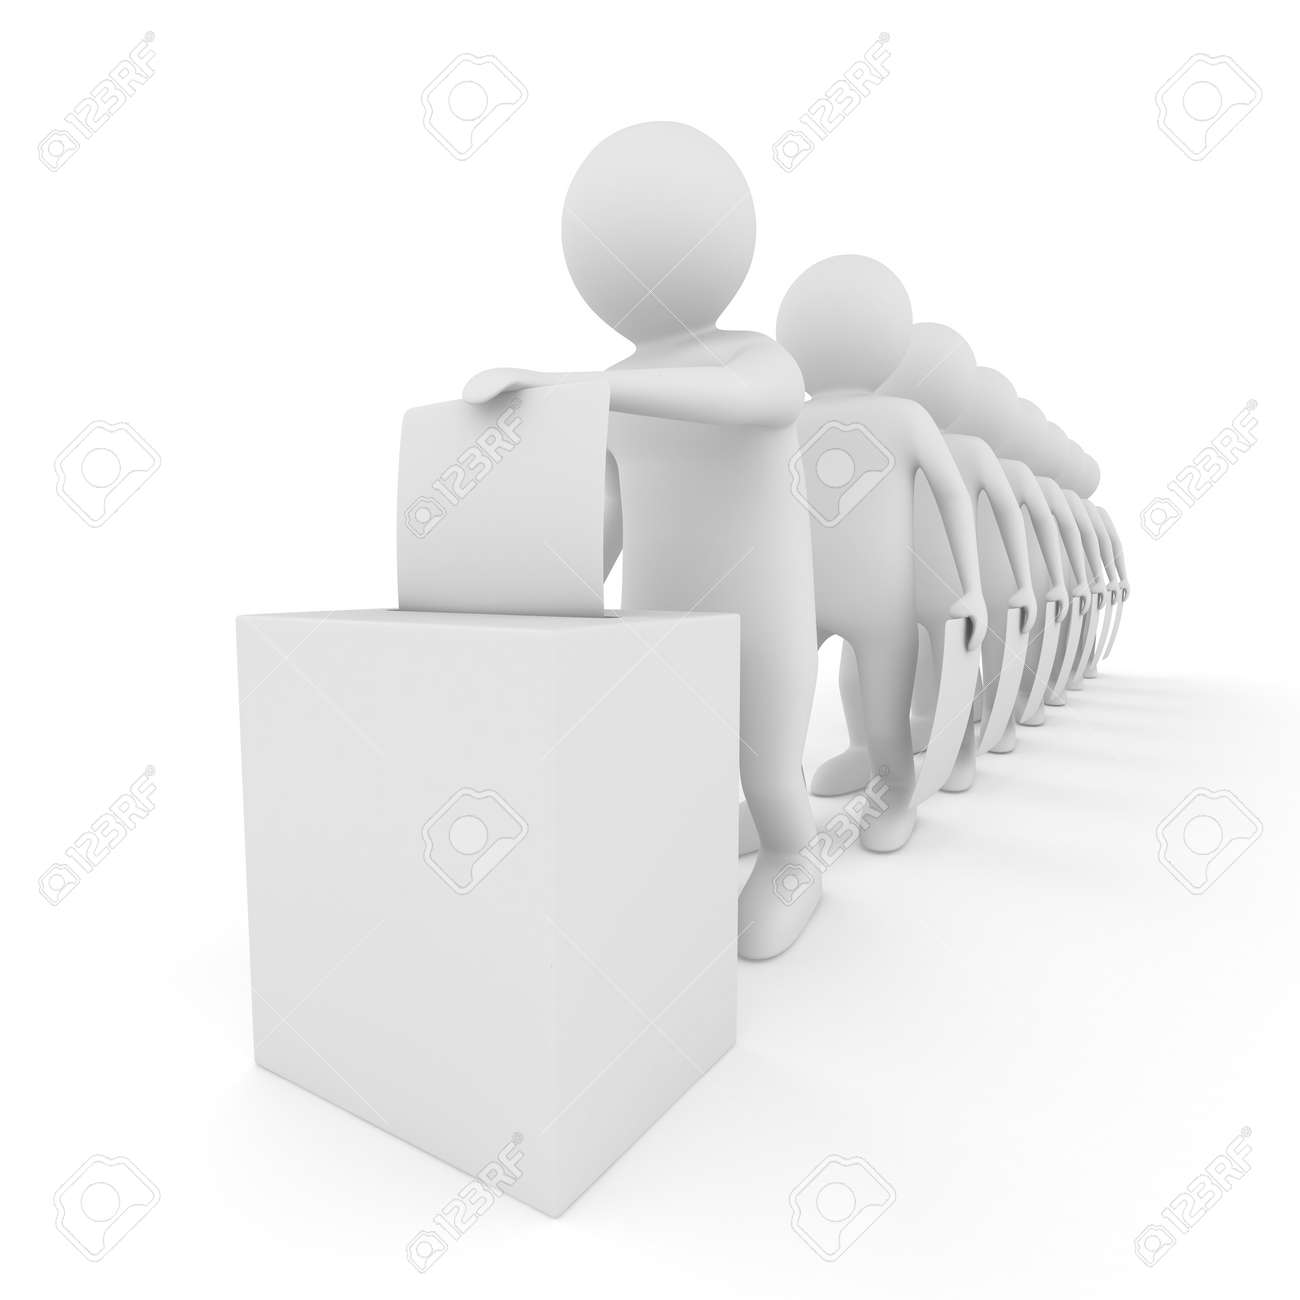 Turn for voting on white. Isolated 3D image Stock Photo - 8970857